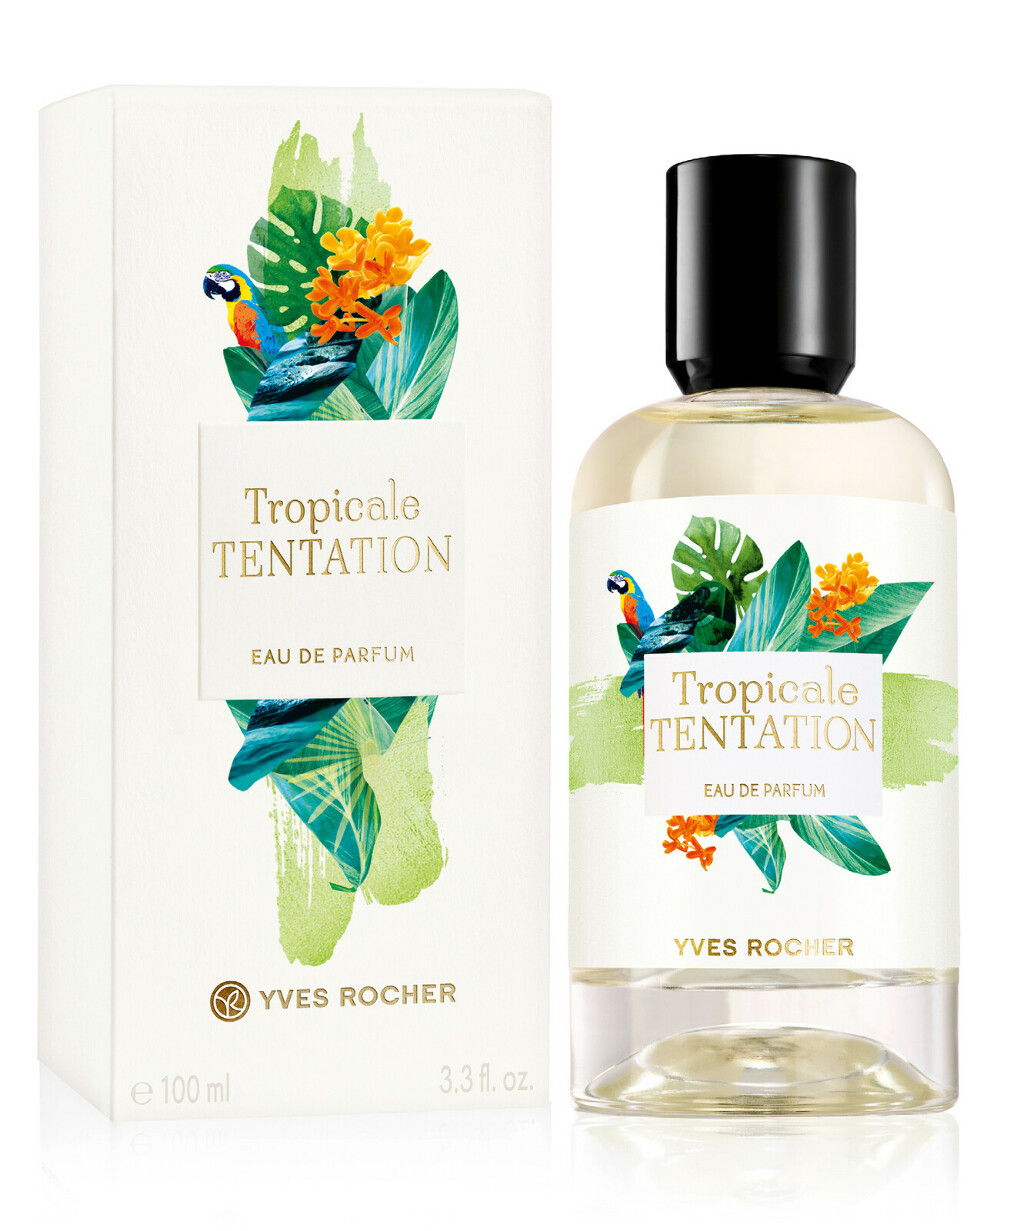 Yves Roscher TROPICALE TENTATION